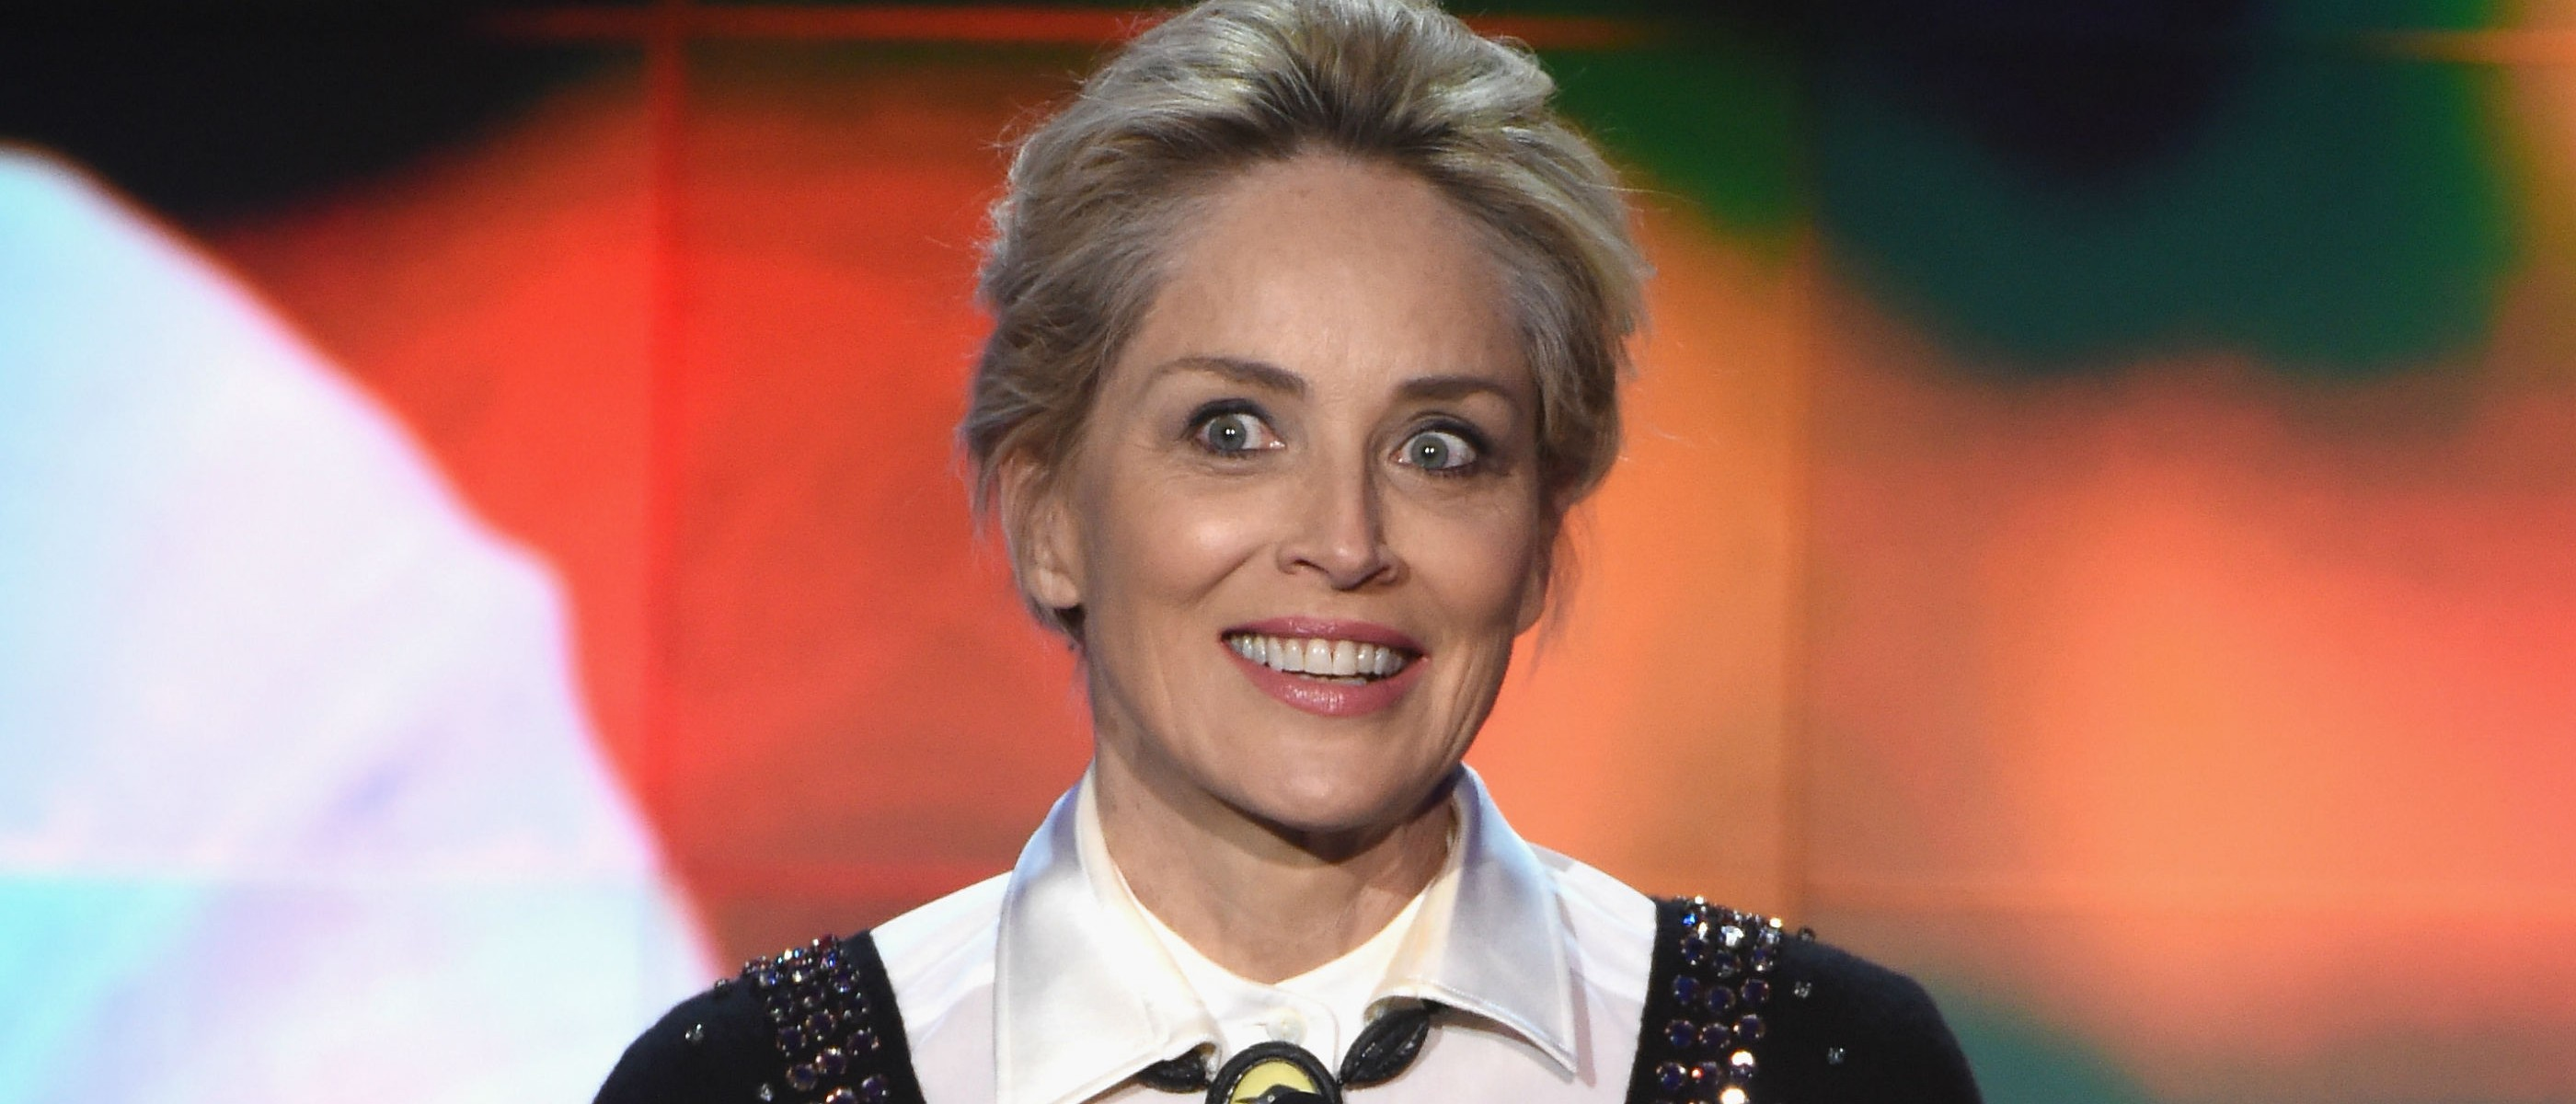 Sharon Stone wants to know how much acid Bernie Sanders has taken